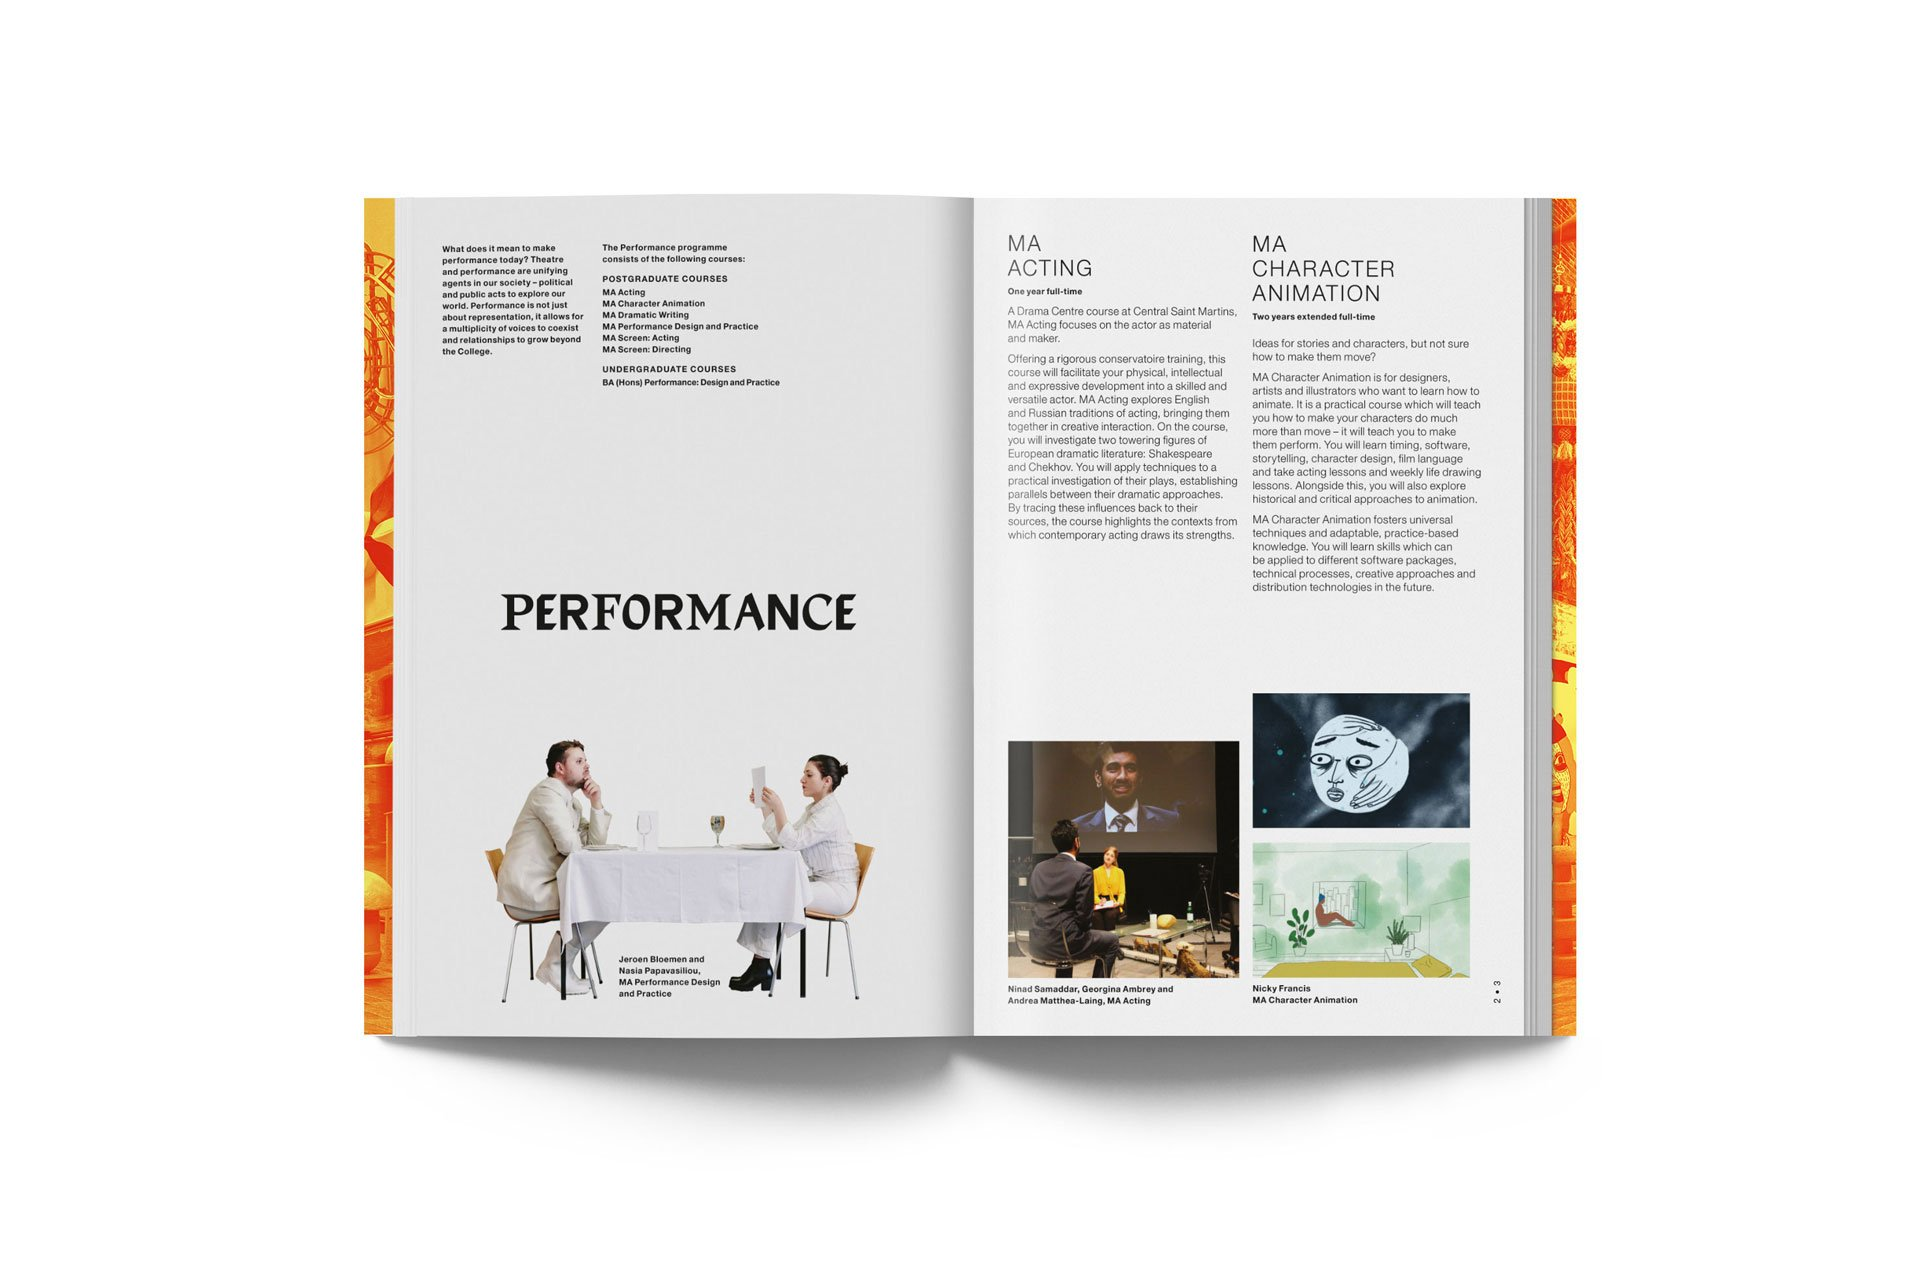 Postgraduate studies at Central Saint Martins. 2nd edition 22